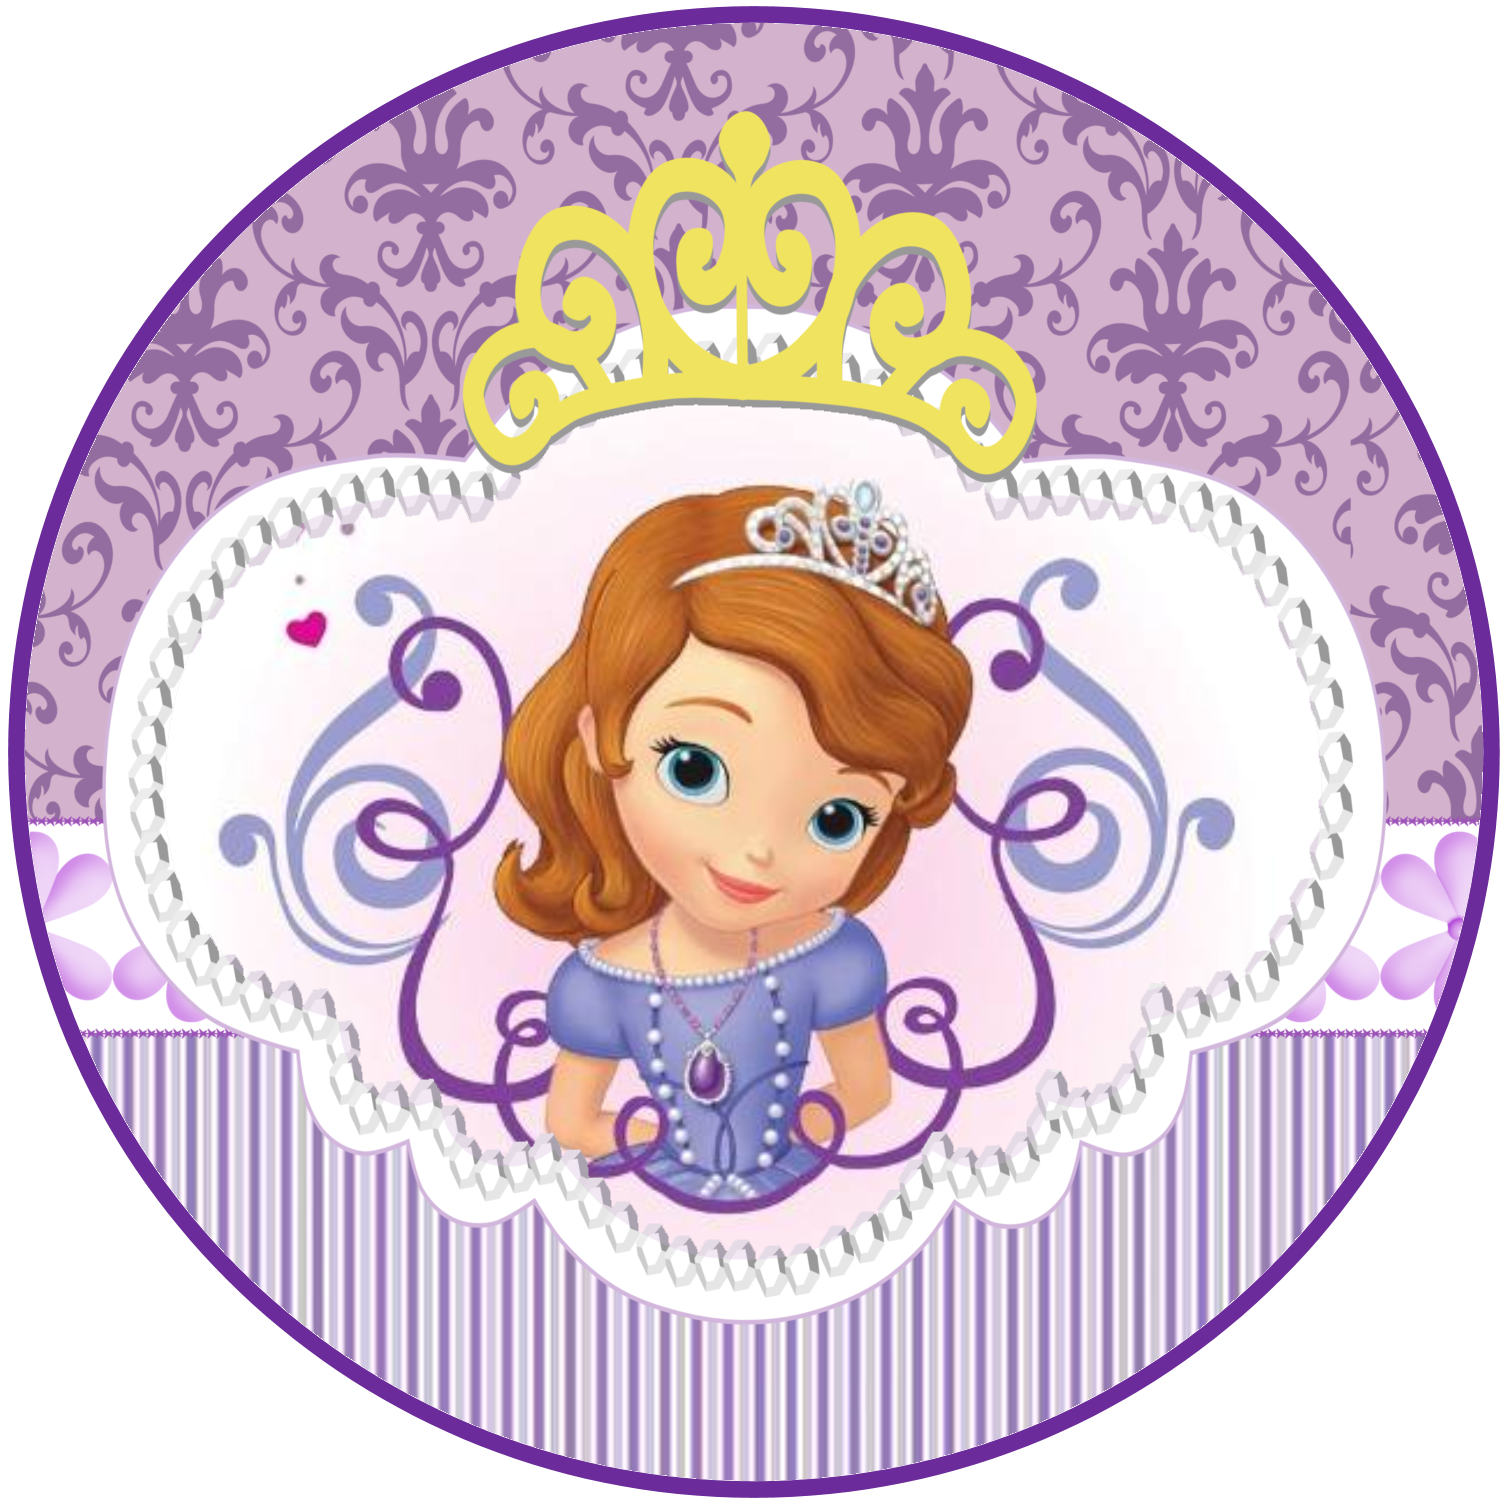 Fairytale Clipart Sofia The First Picture 1049992 Fairytale